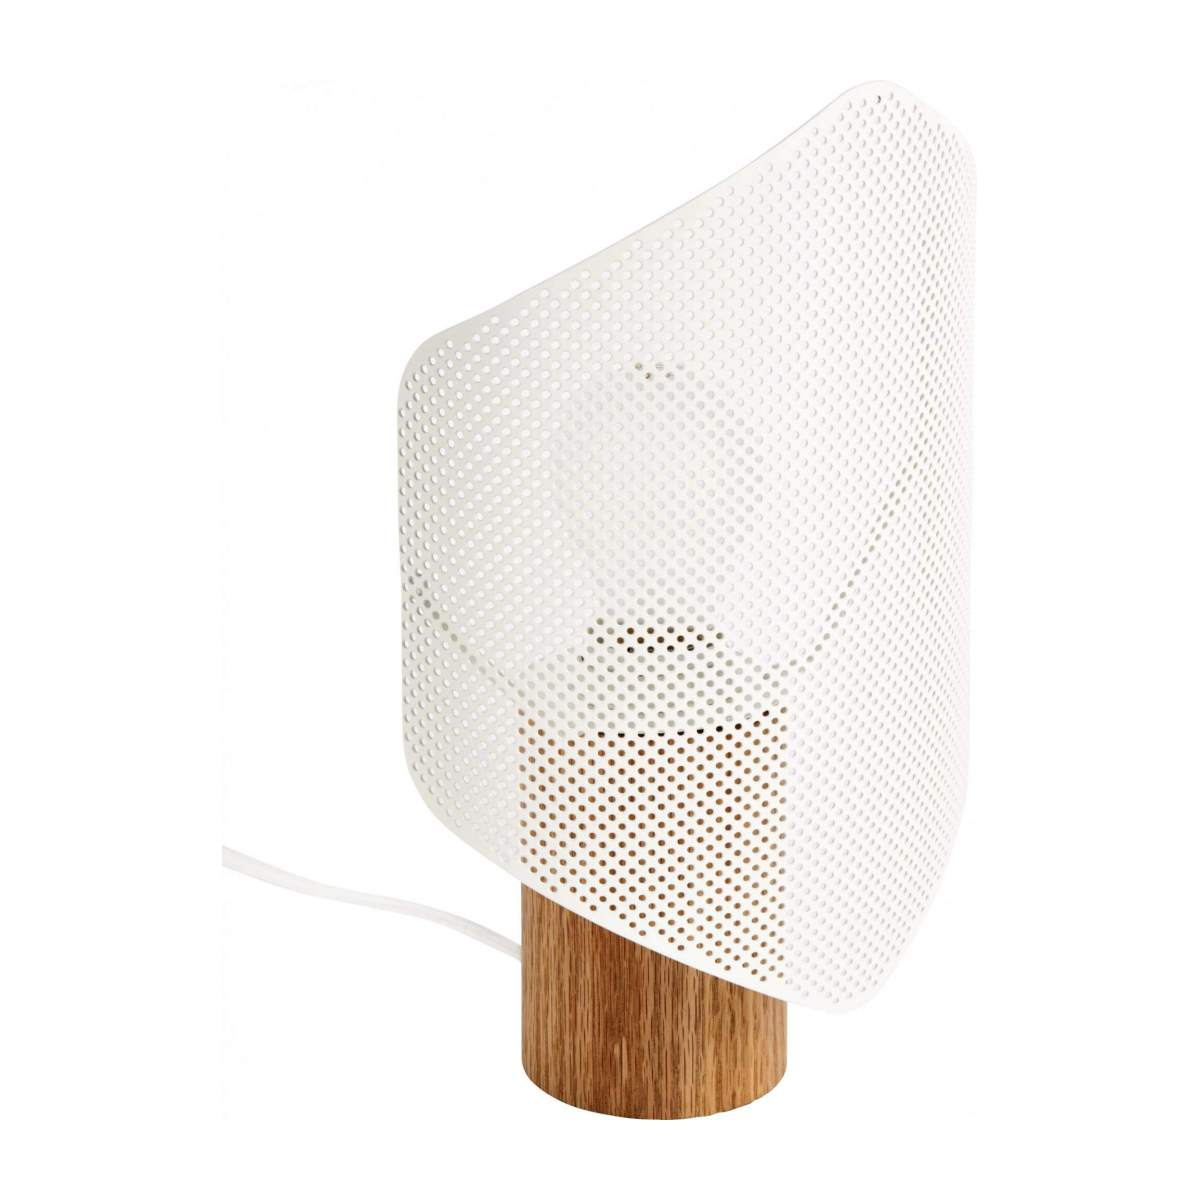 Lampe de table blanche n°1